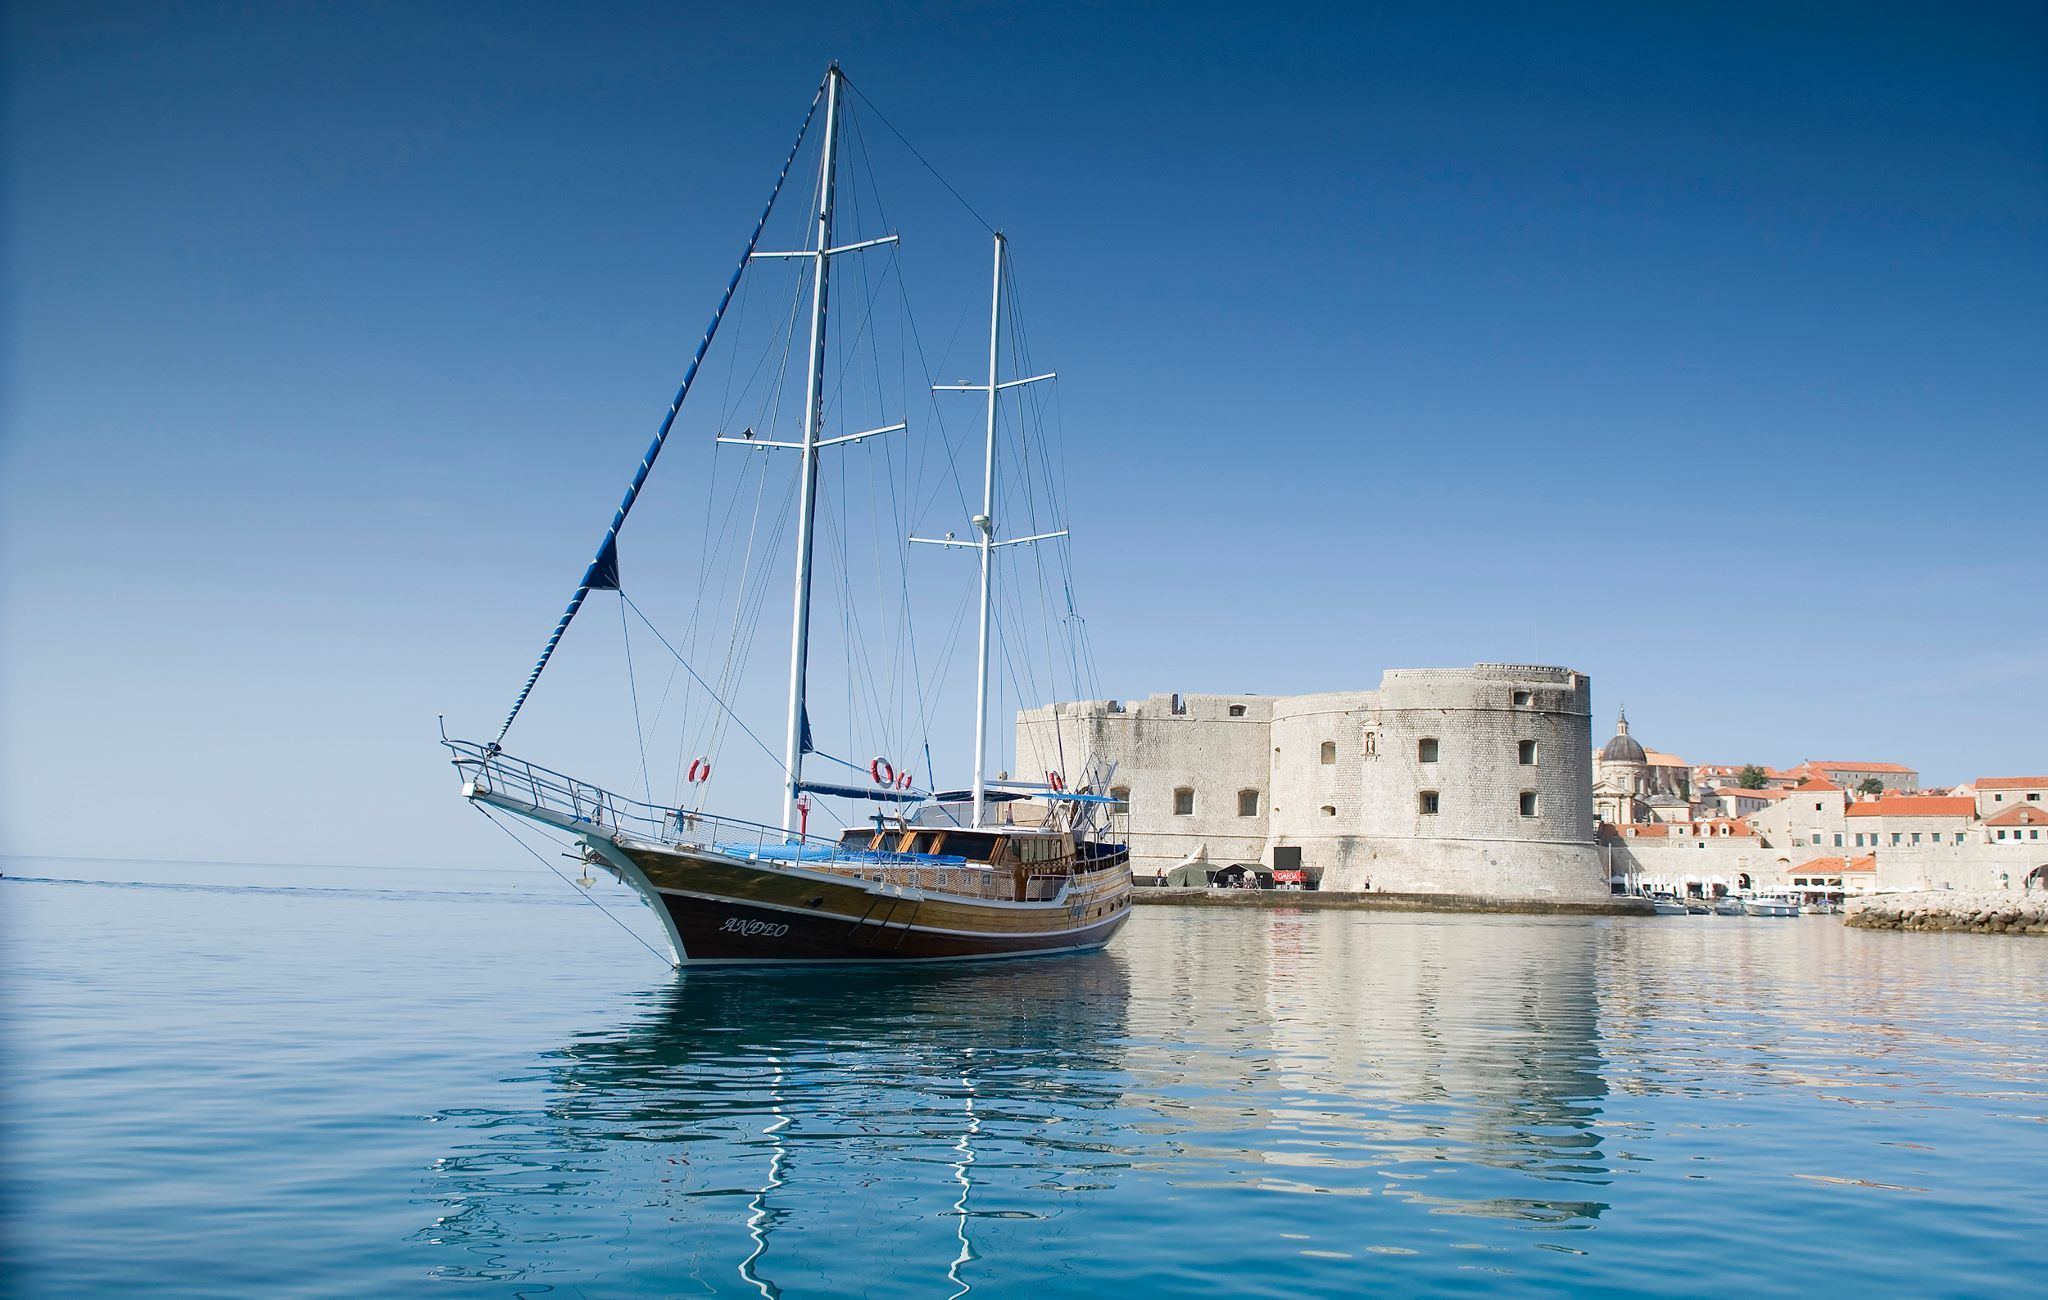 Charter This Beautiful Yacht From Dubrovnik This Summer With Durukos Yachting She Sleeps 10 Guests And Her Weekly Rate Is 18 400 Croatian Coast Yacht Sailing